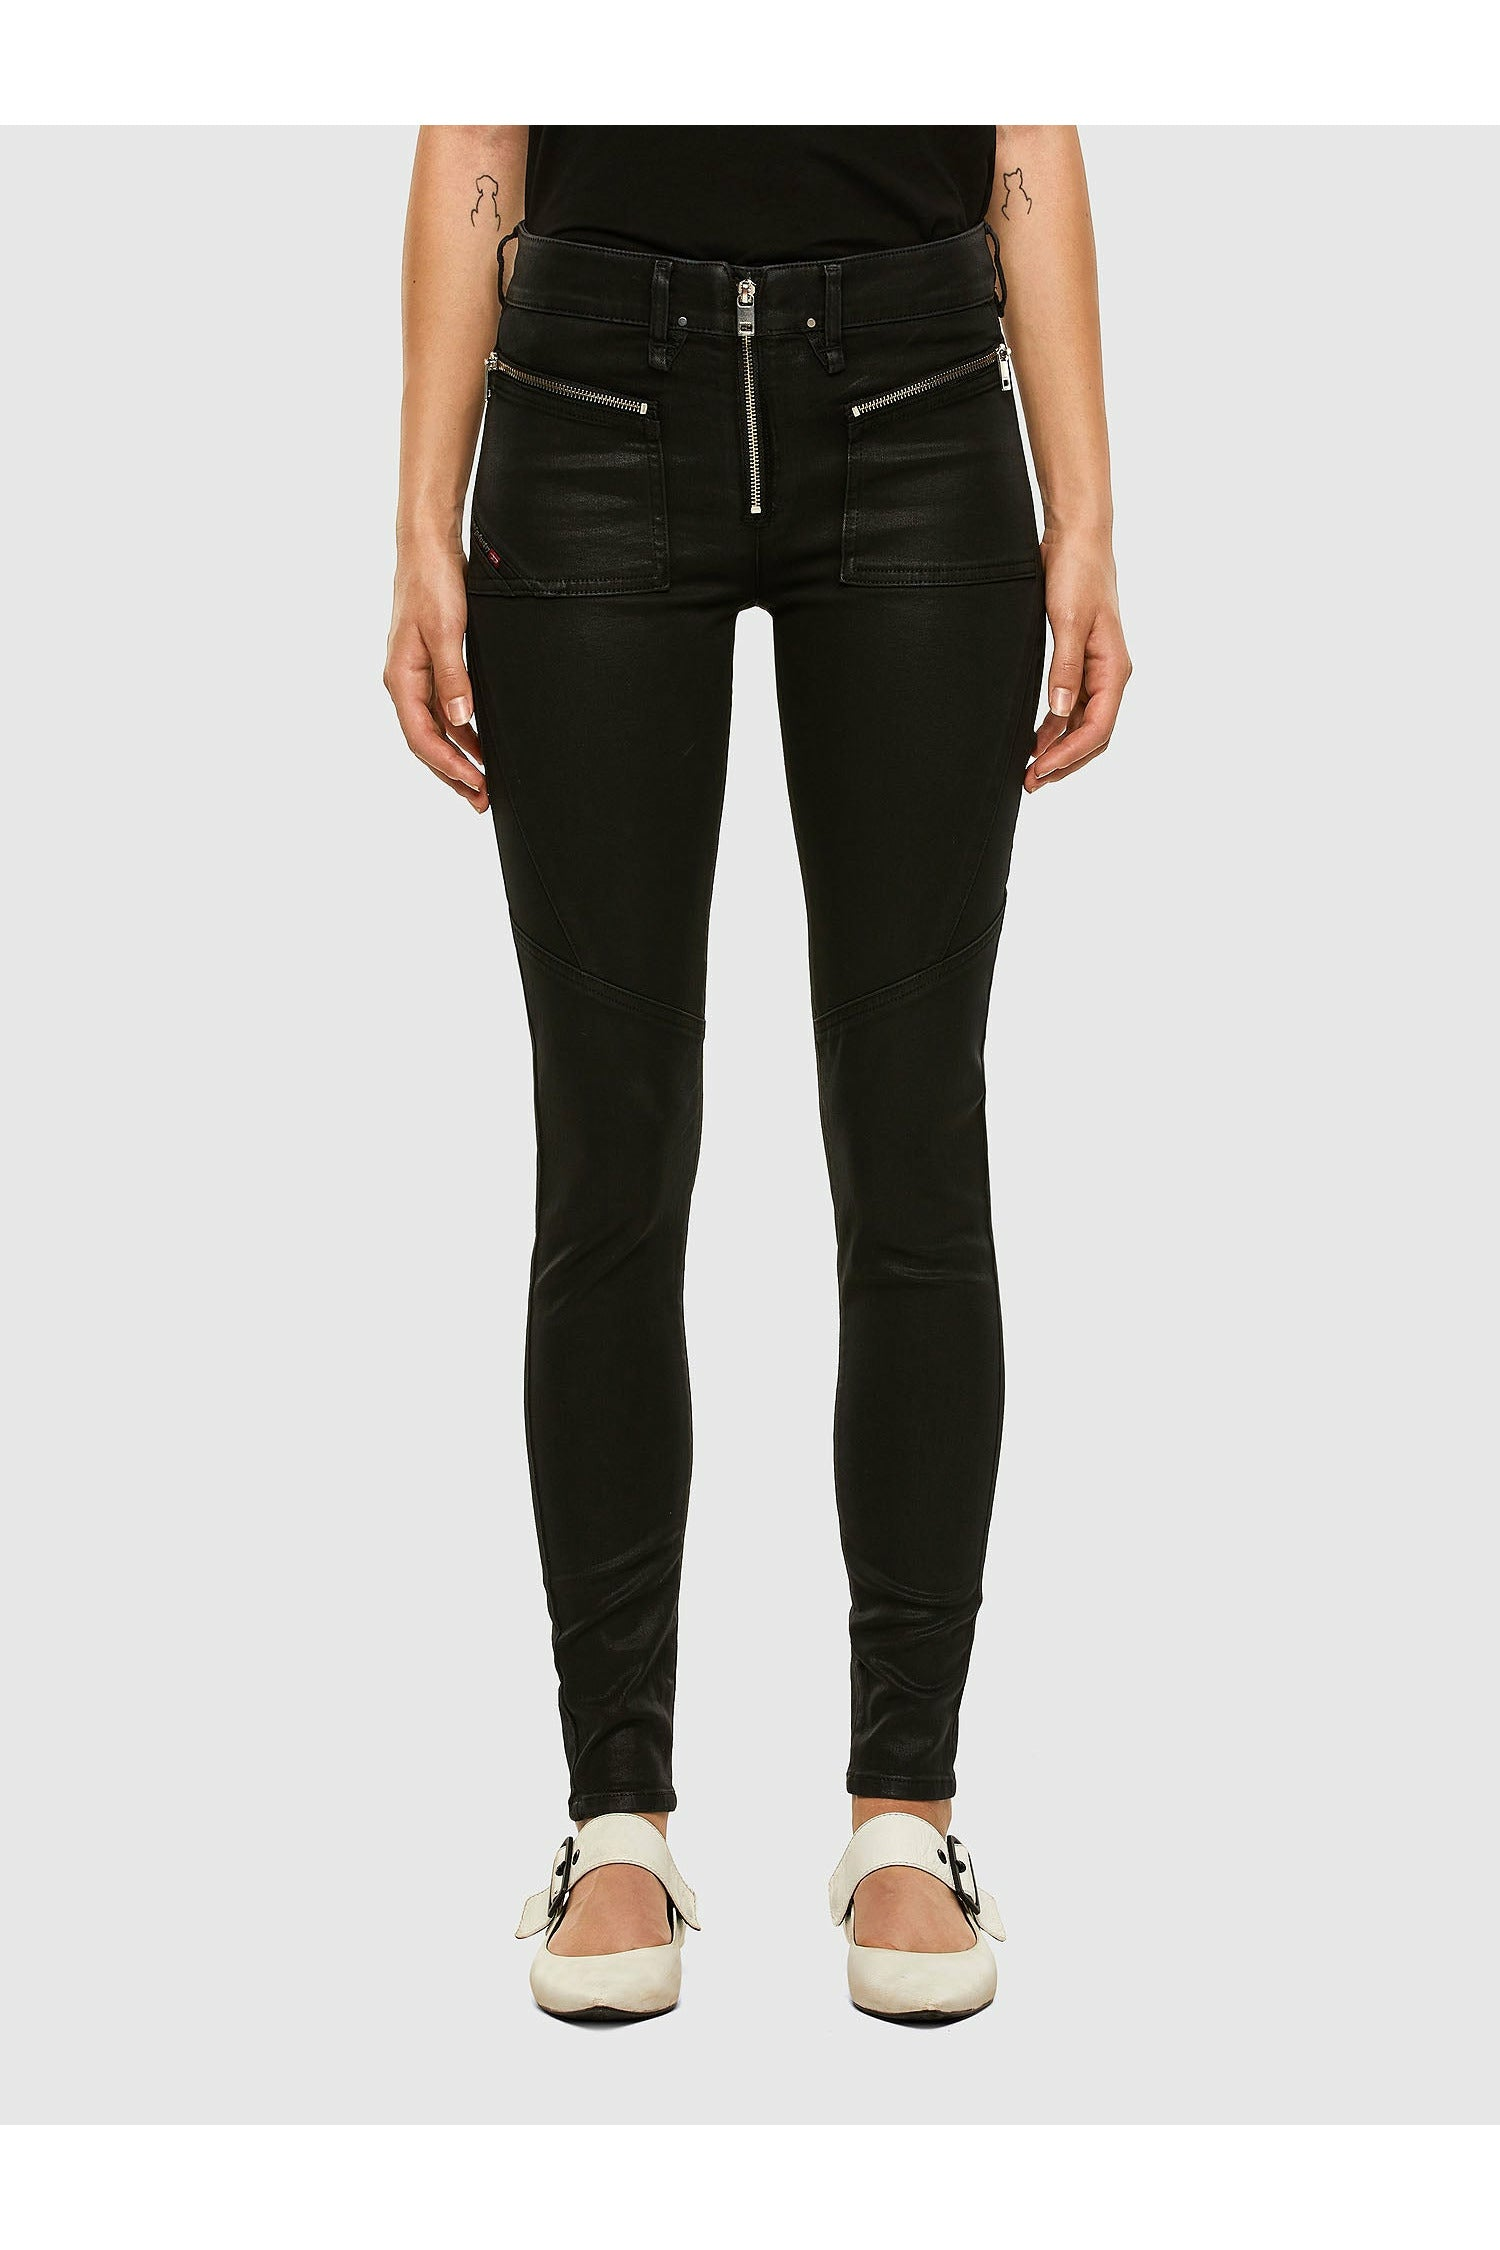 Diesel Slandy 069JT Super Skinny Regular Waist - Black Mirrored